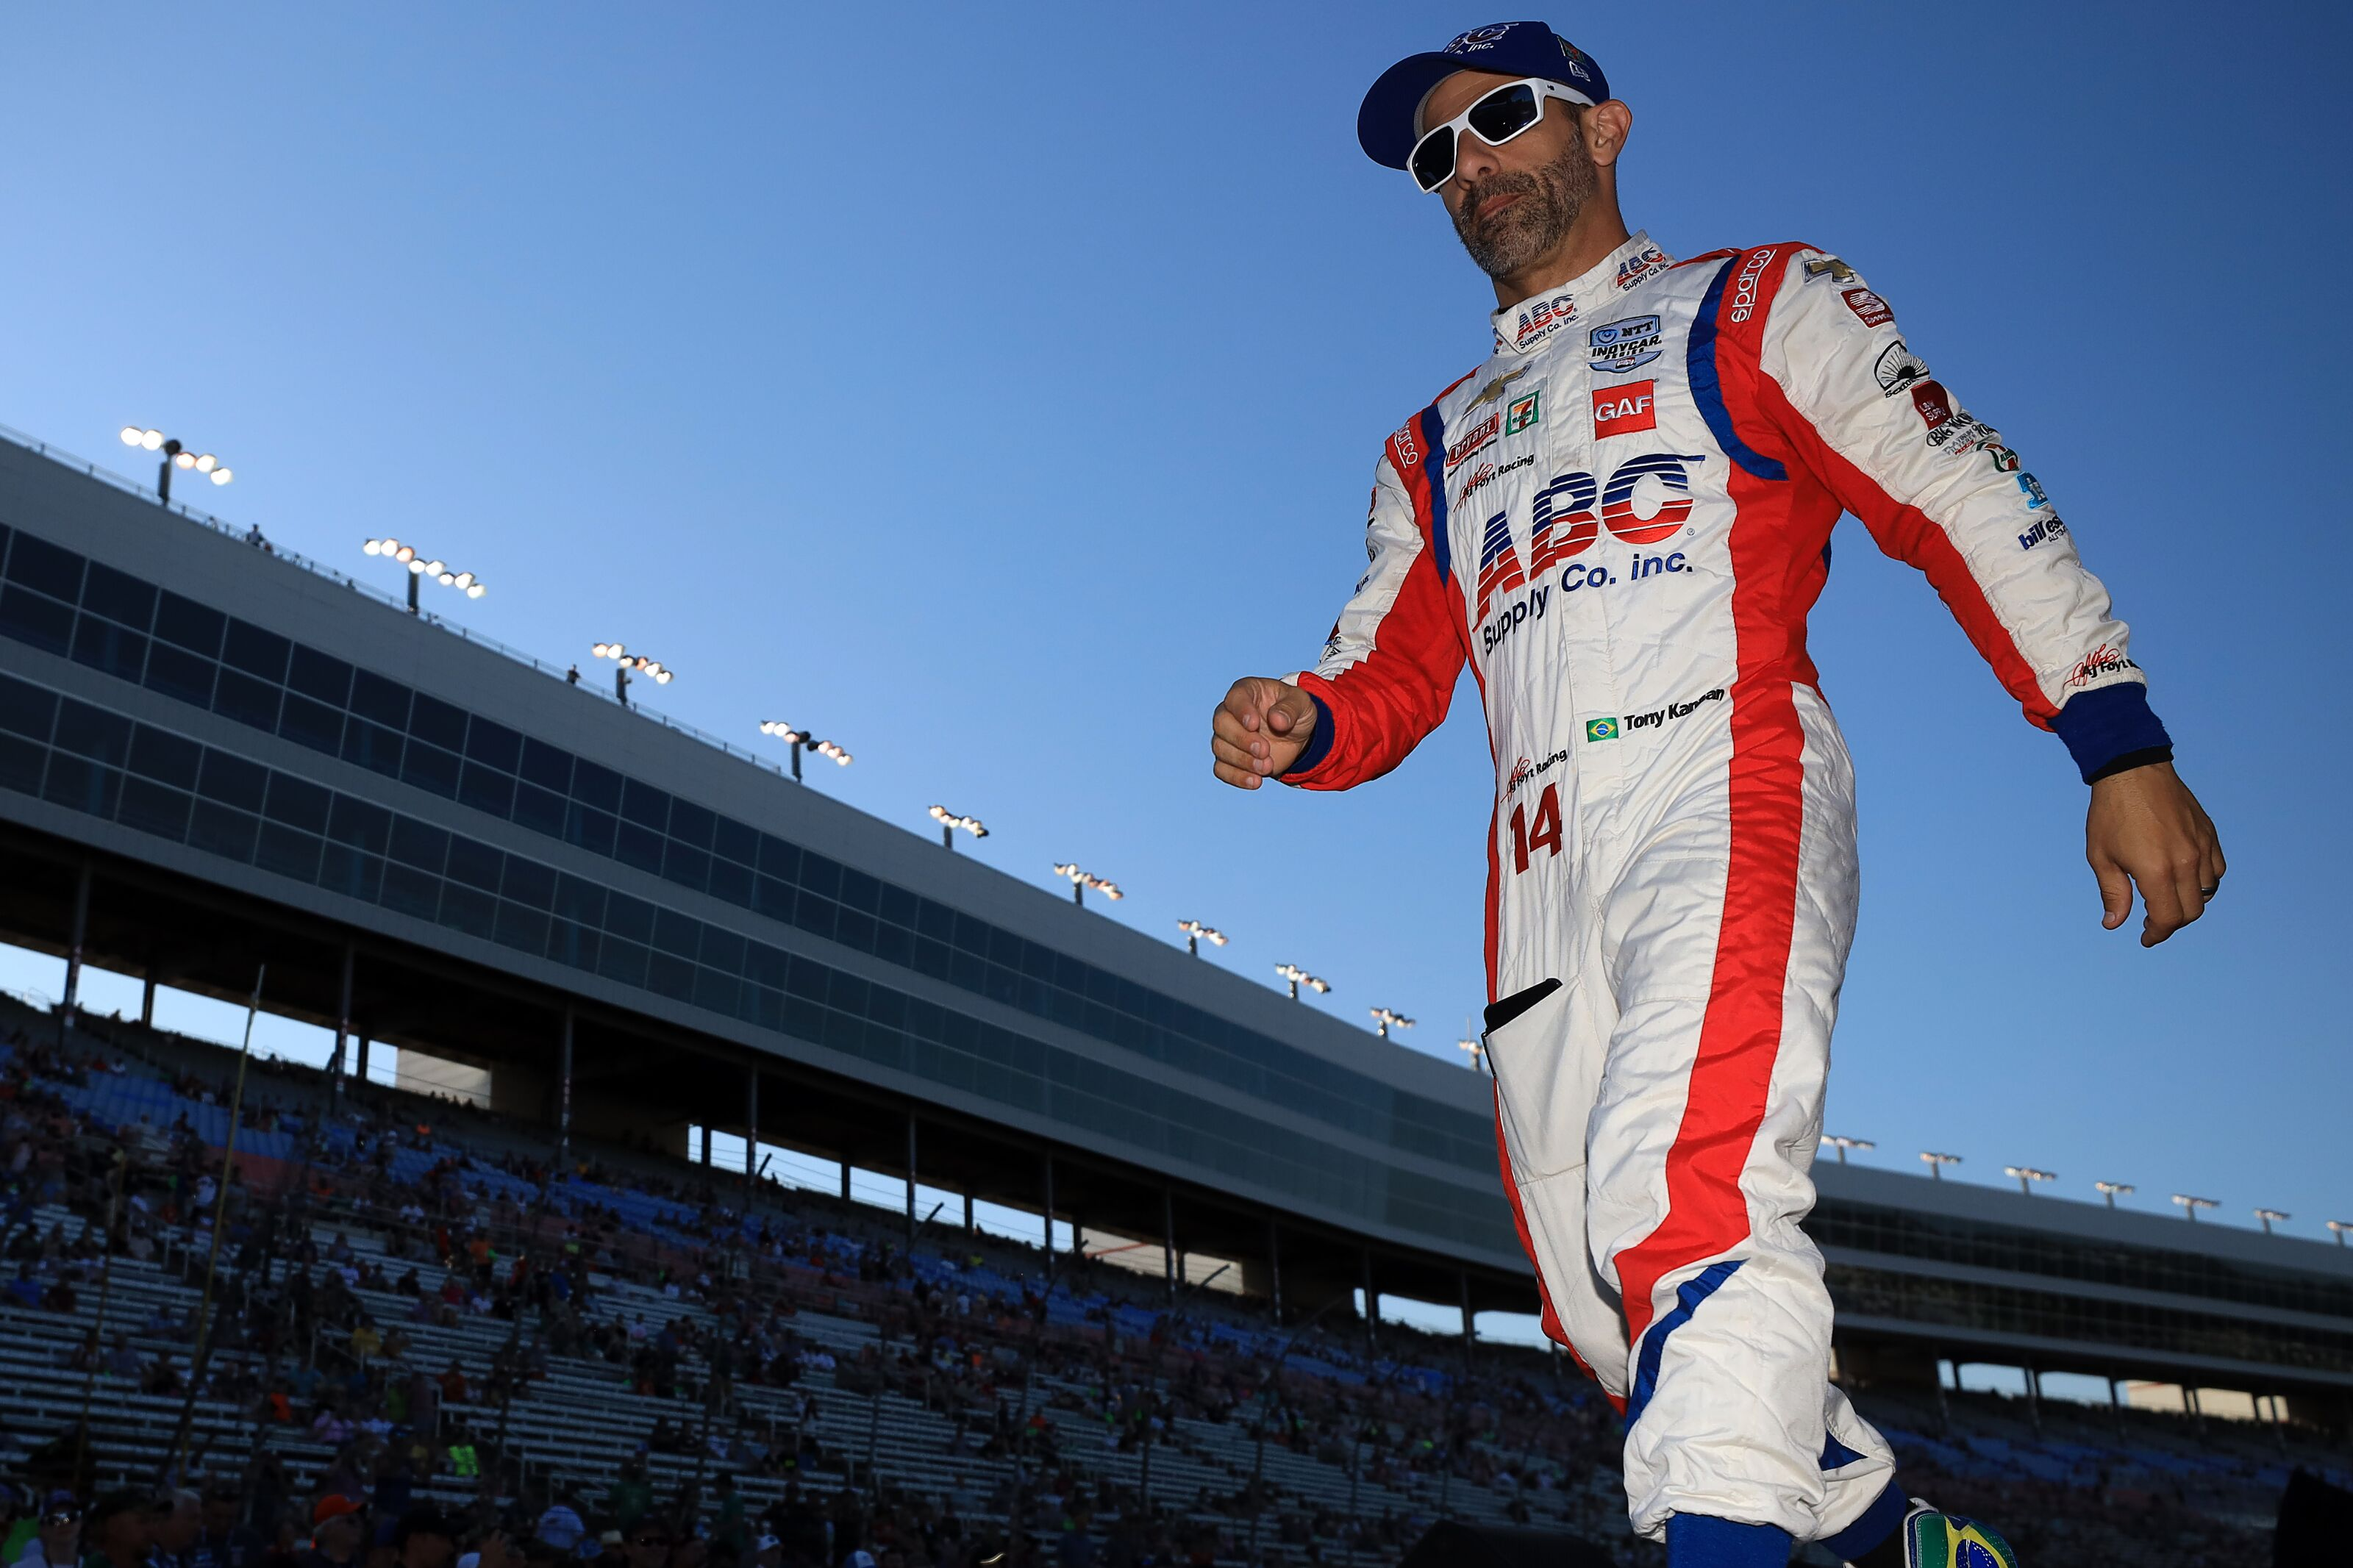 IndyCar: Will Tony Kanaan be back for his 23rd season in 2020?